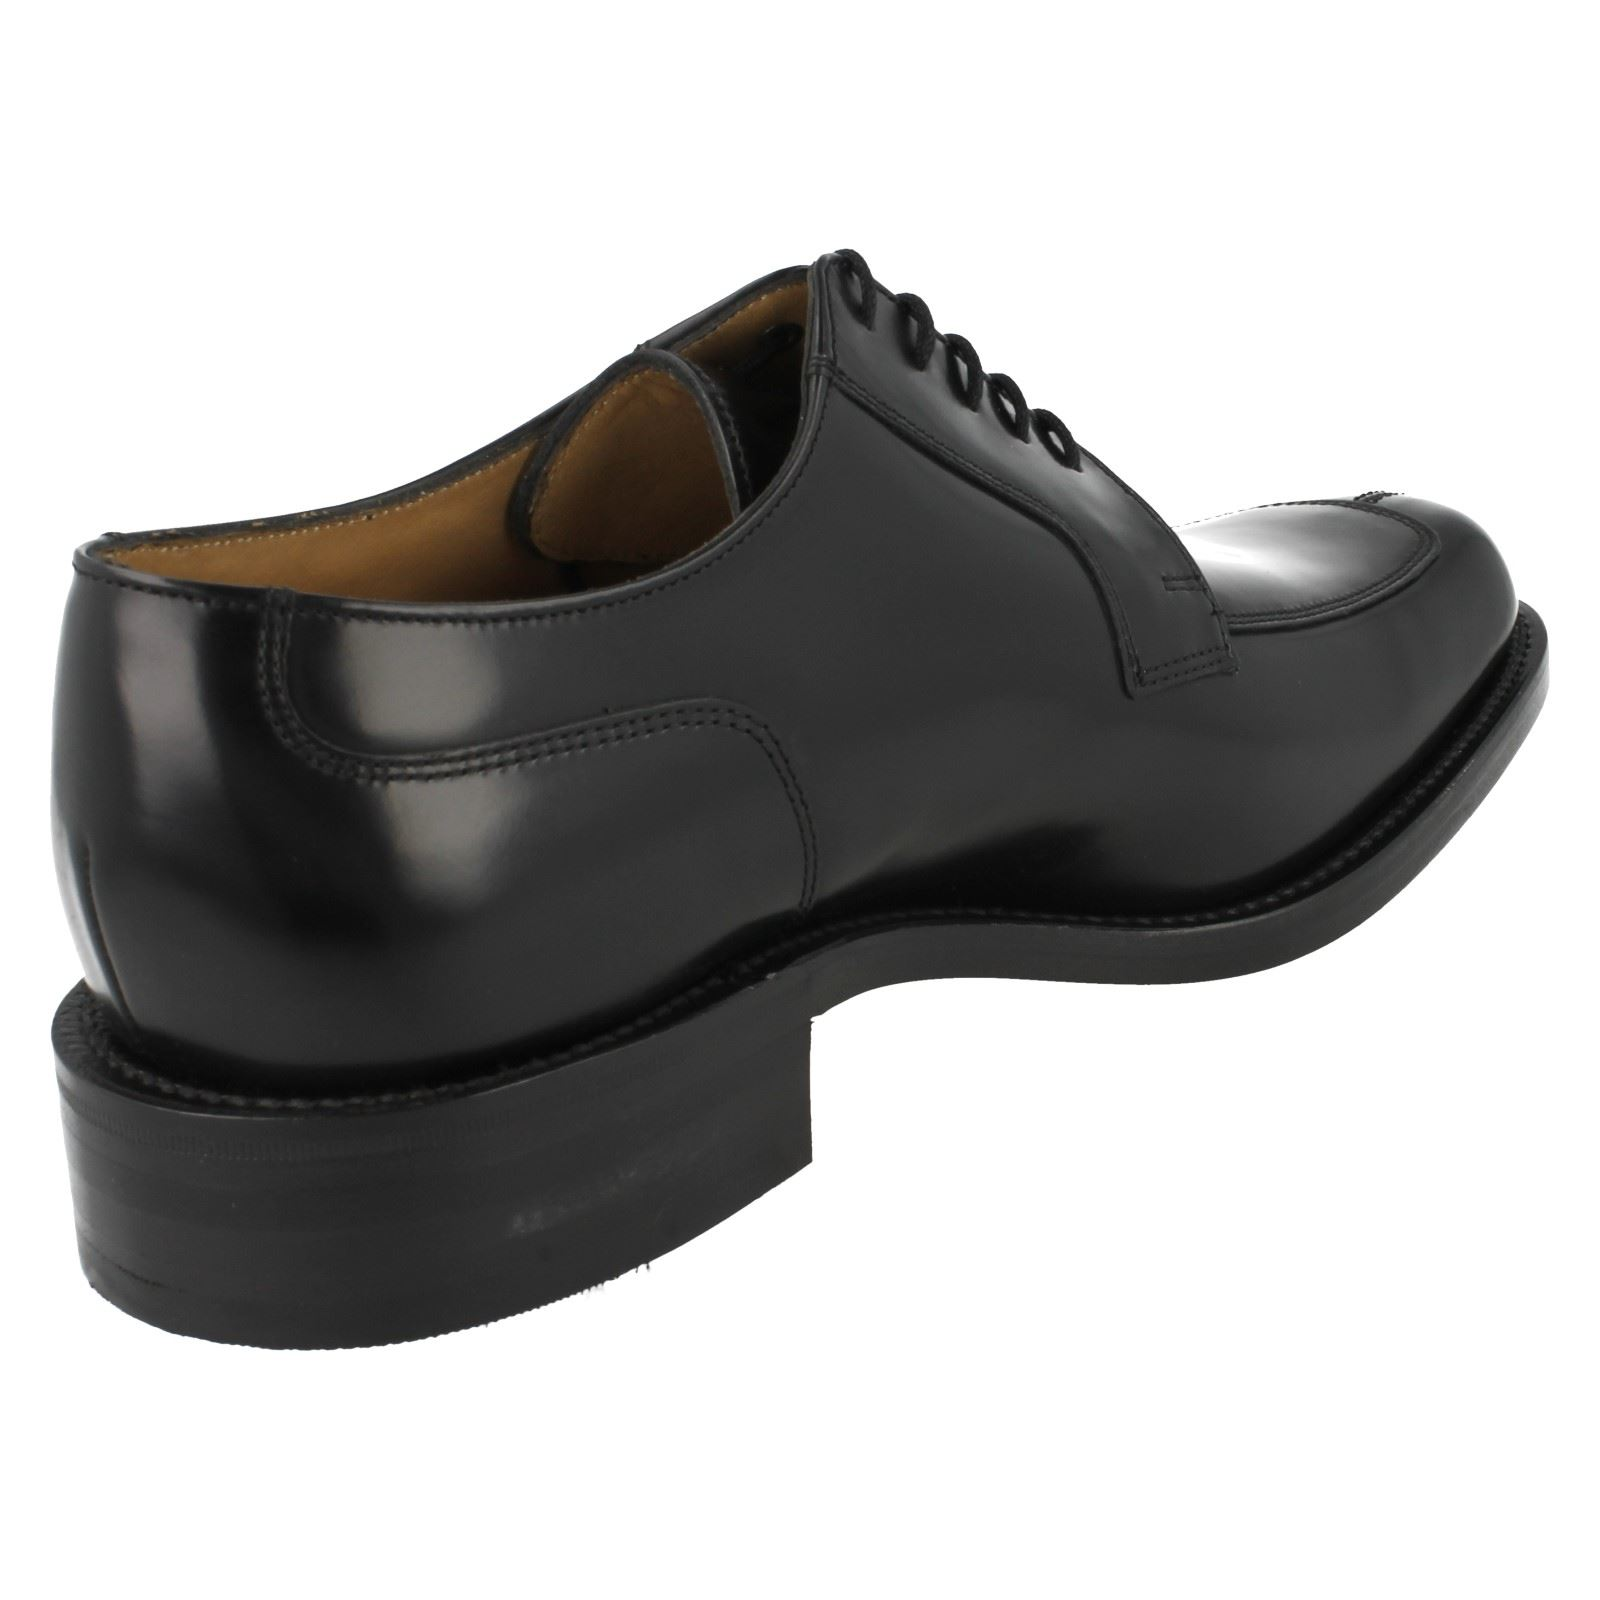 Mens Loake Formal Black Leather Shoes Style - 1303B